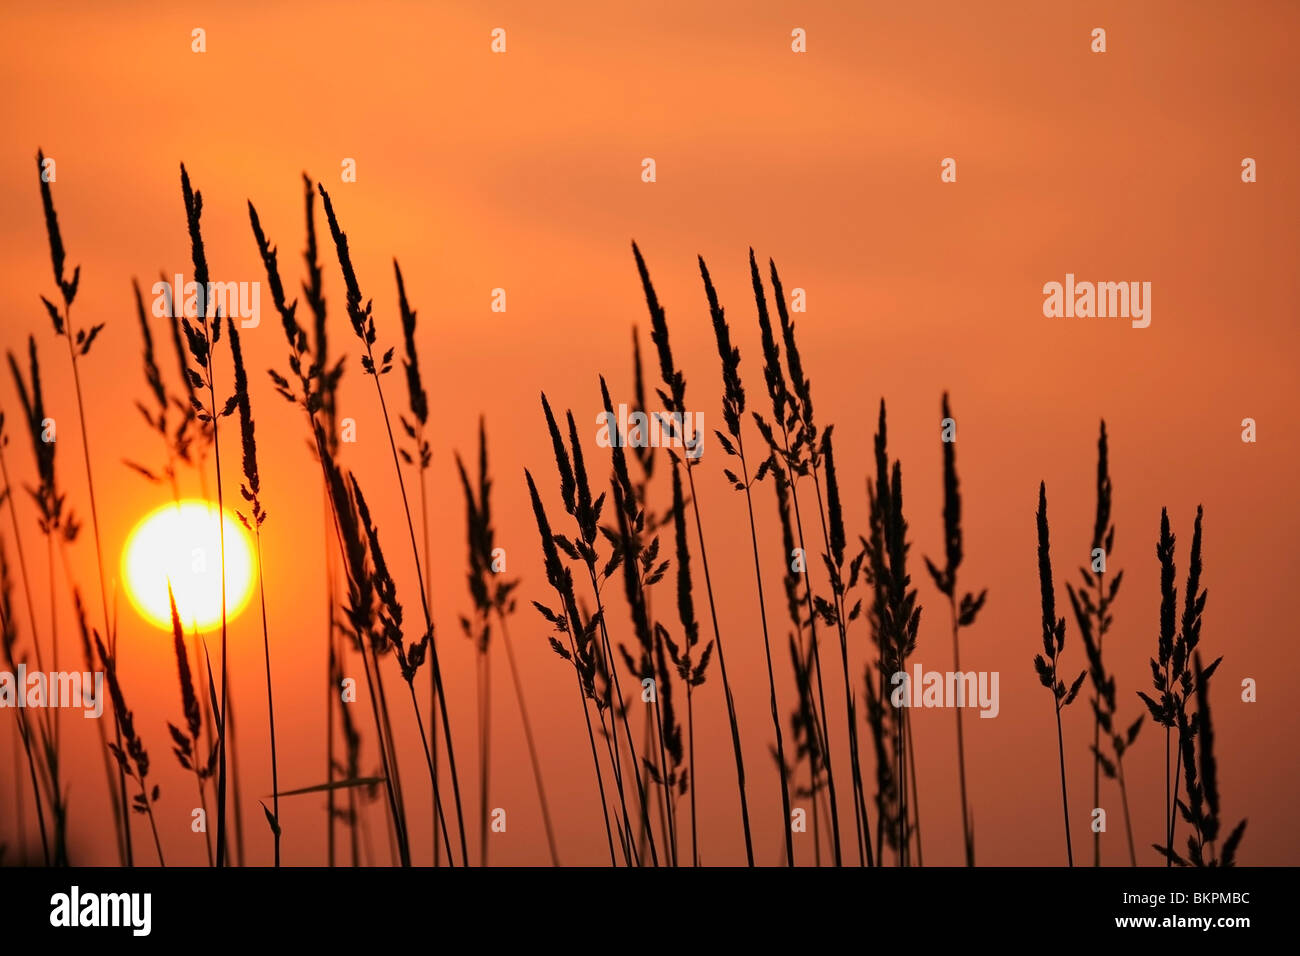 Tall Grass In A Sunset - Stock Image